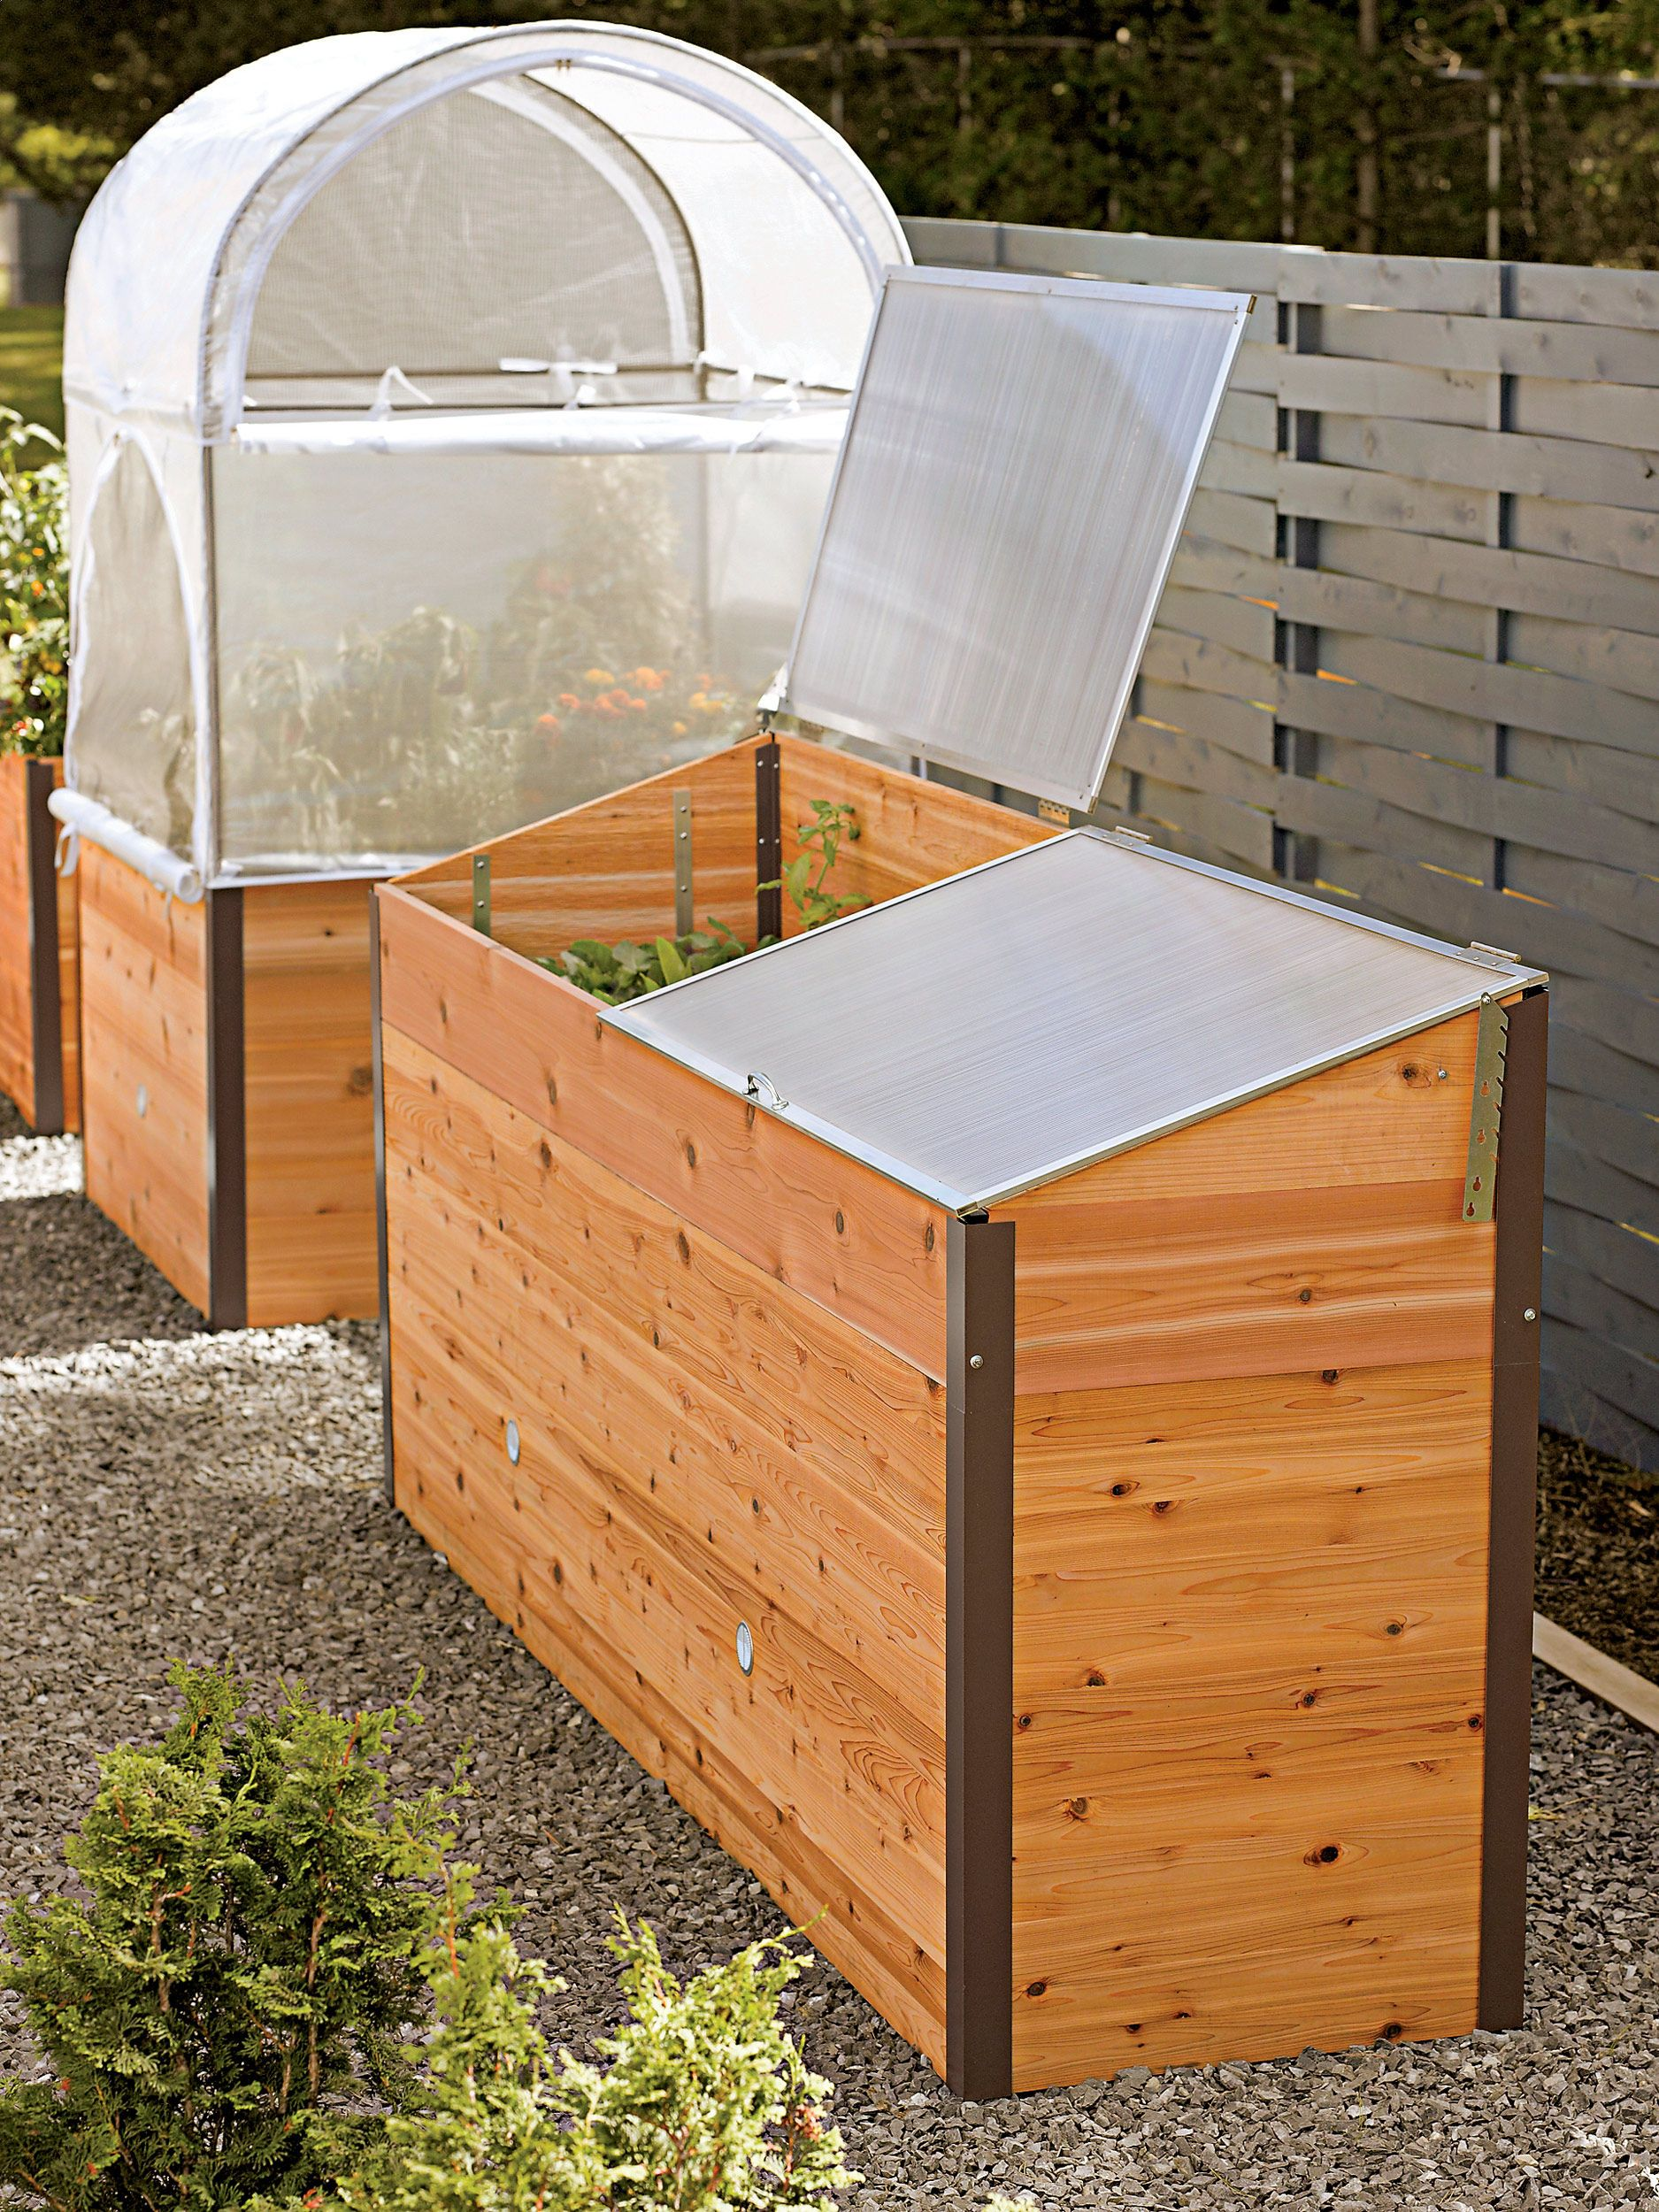 Elevated Raised Bed with Cold Frame | Greenhouse Planter | Made in on small hotel designs, small greenhouses for backyards, small science designs, small pre-built homes, small boat slip designs, small garden designs, small carport designs, small green roof designs, small boathouse designs, small wood designs, small industrial building designs, small flowers designs, small bell tower designs, small floral designs, small spring designs, small business designs, small sauna designs, small glass designs, glass greenhouses designs, small gazebo designs,